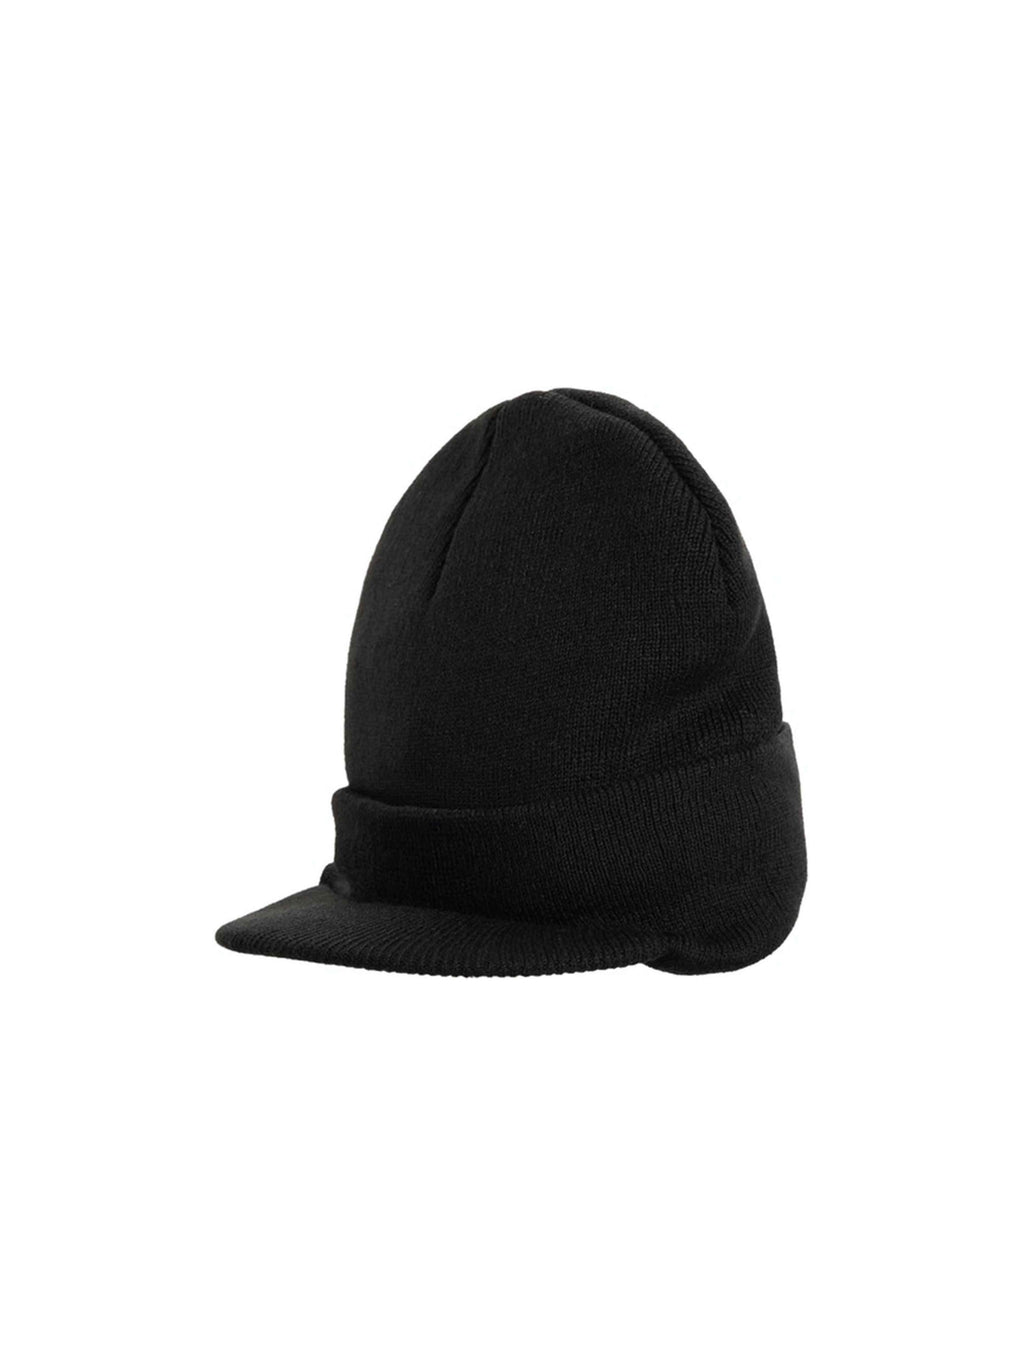 Supreme Radar Beanie Black [FW20]